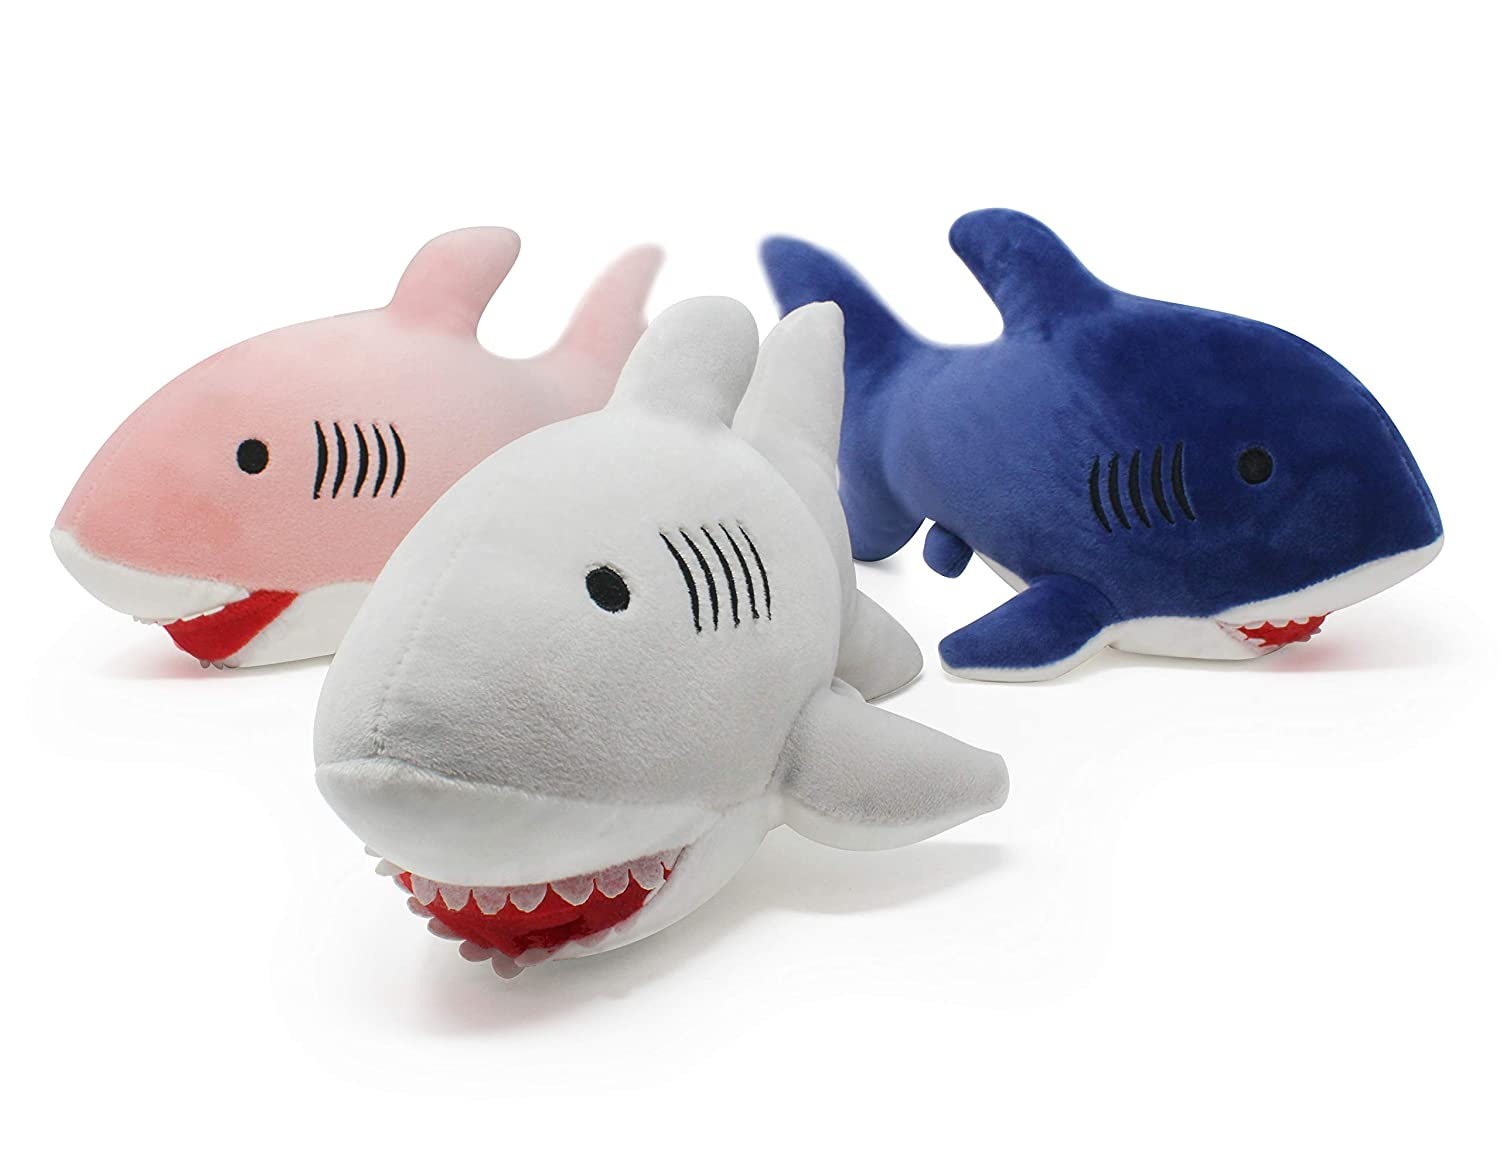 Pluffins Shark Plush - Stuffed Animal in 3 Colors - 3-Pack